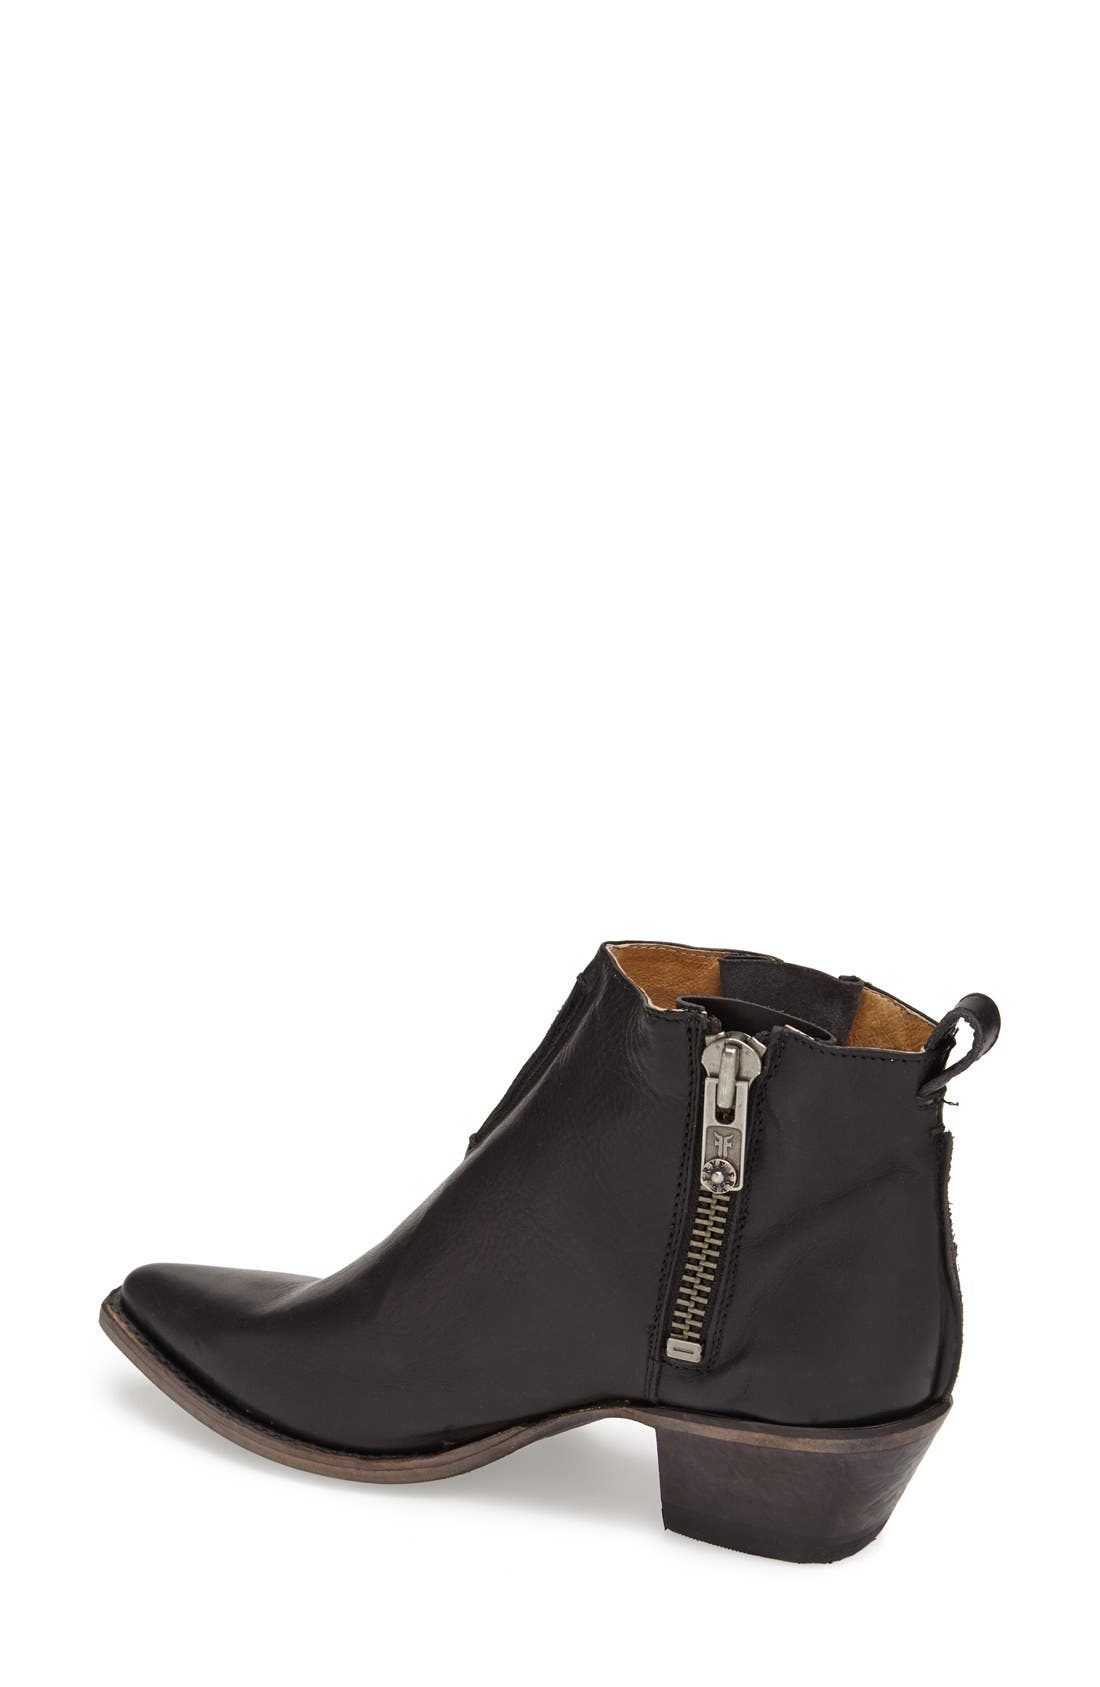 'Sacha' Washed Leather Ankle Boot,                             Alternate thumbnail 7, color,